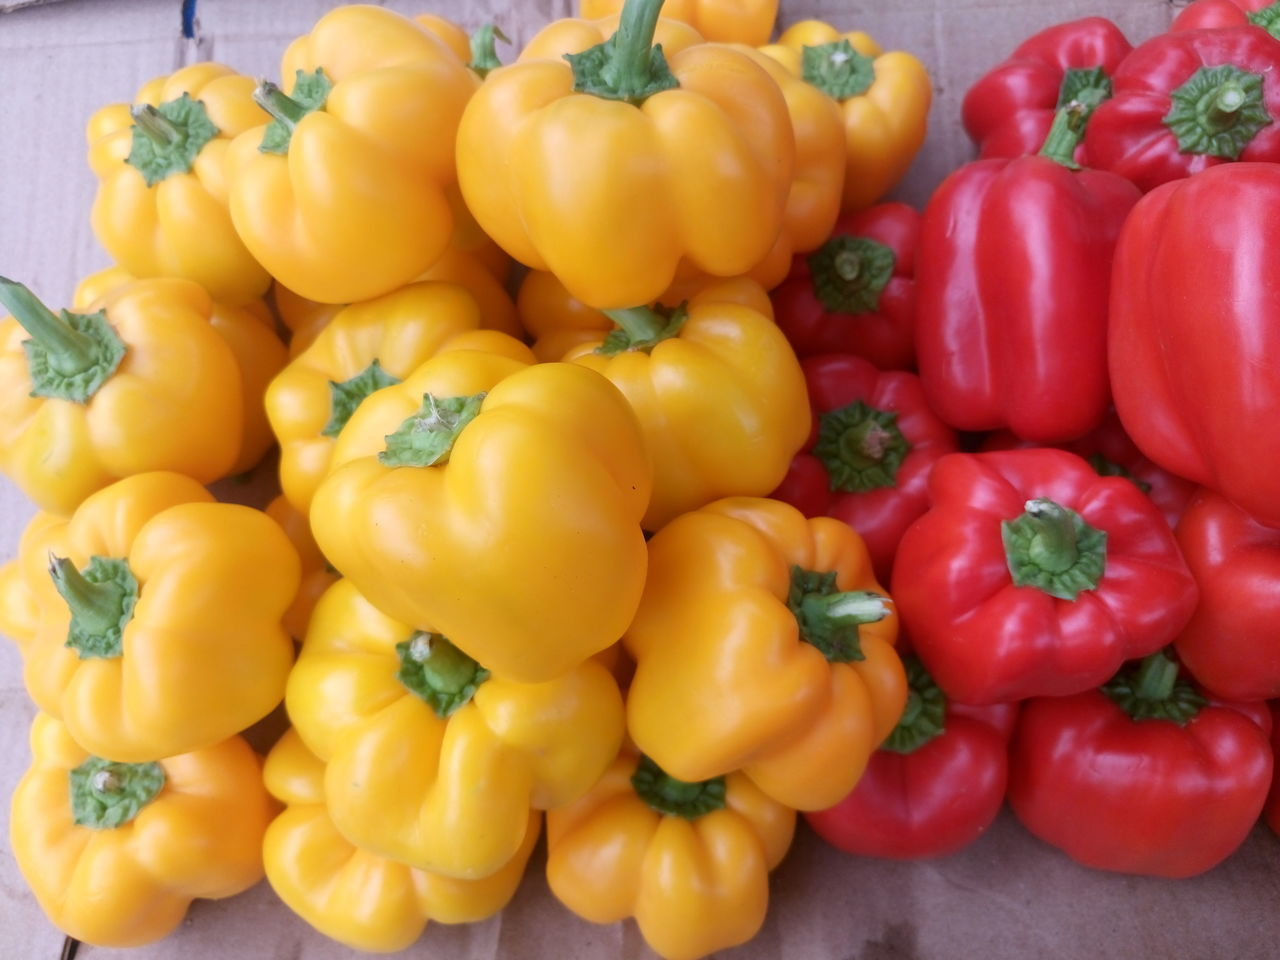 Abundance Backgrounds Bell Pepper Choice Close-up Food For Sale Freshness Full Frame Healthy Eating Large Group Of Objects Market Market Stall No People Organic Raw Food Red Red Bell Pepper Red Chili Pepper Retail  Still Life Tomato Variation Vegetable Yellow Bell Pepper